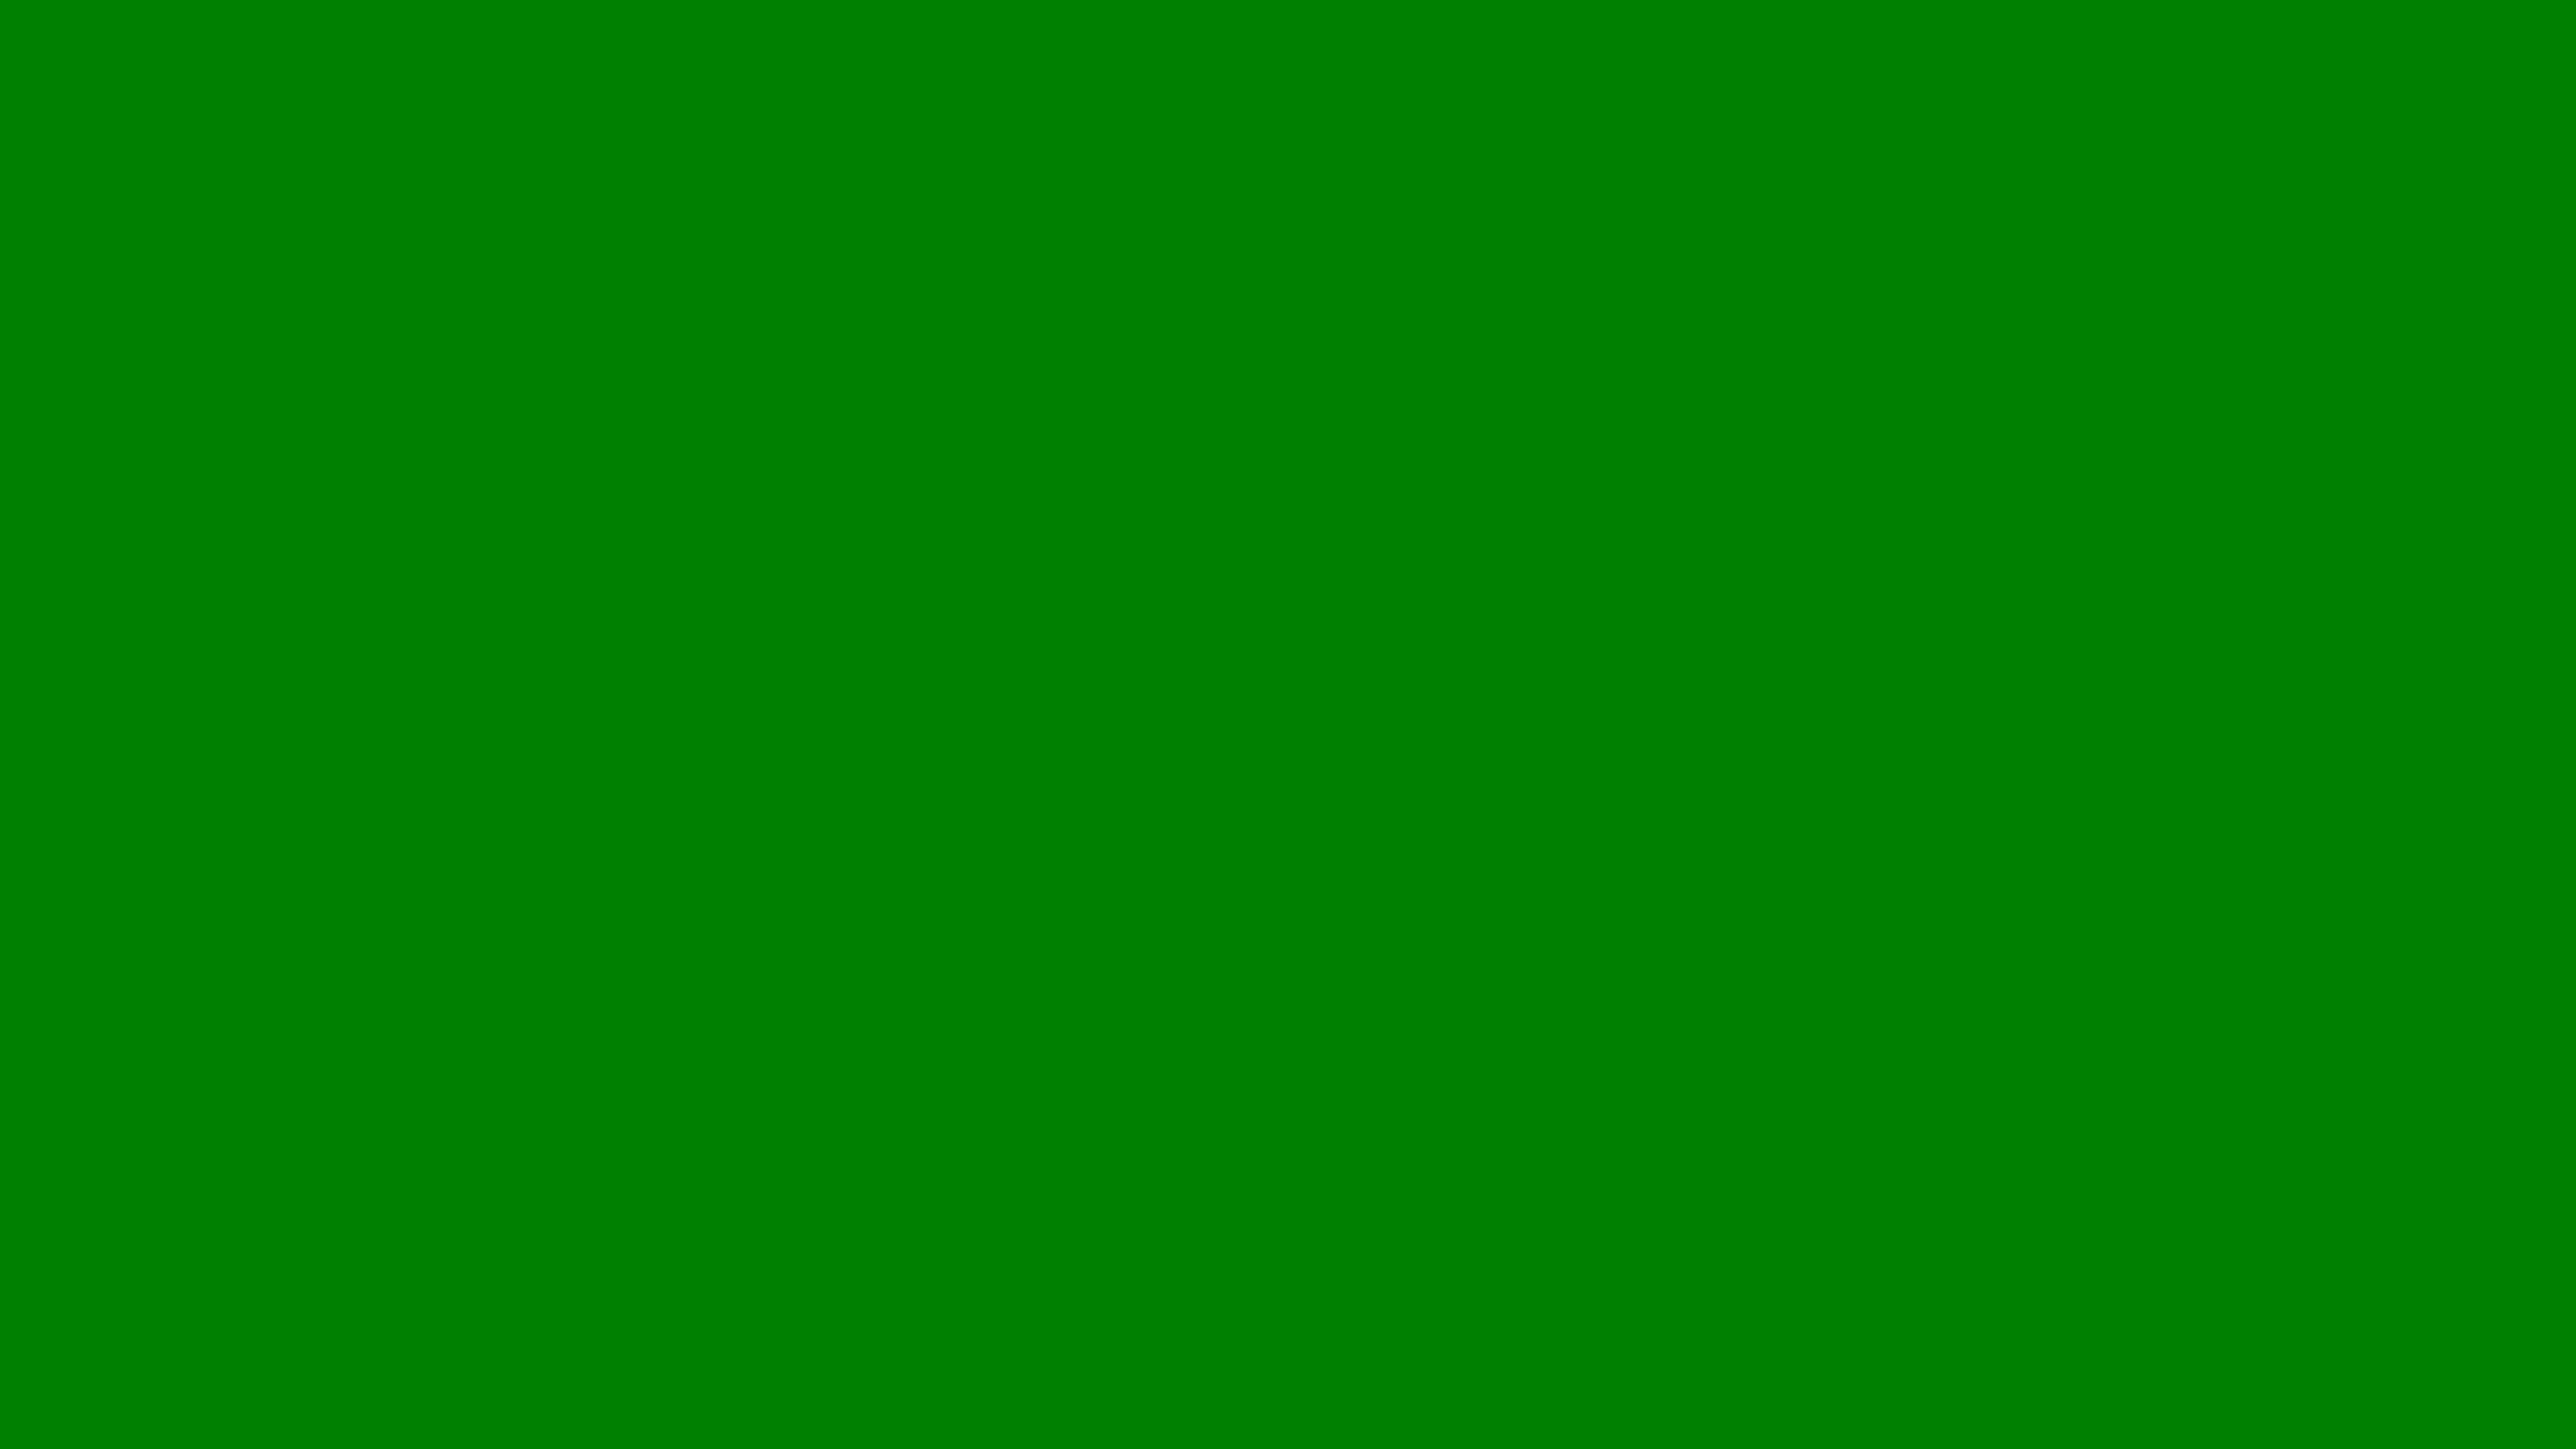 3840x2160 Green Web Color Solid Color Background